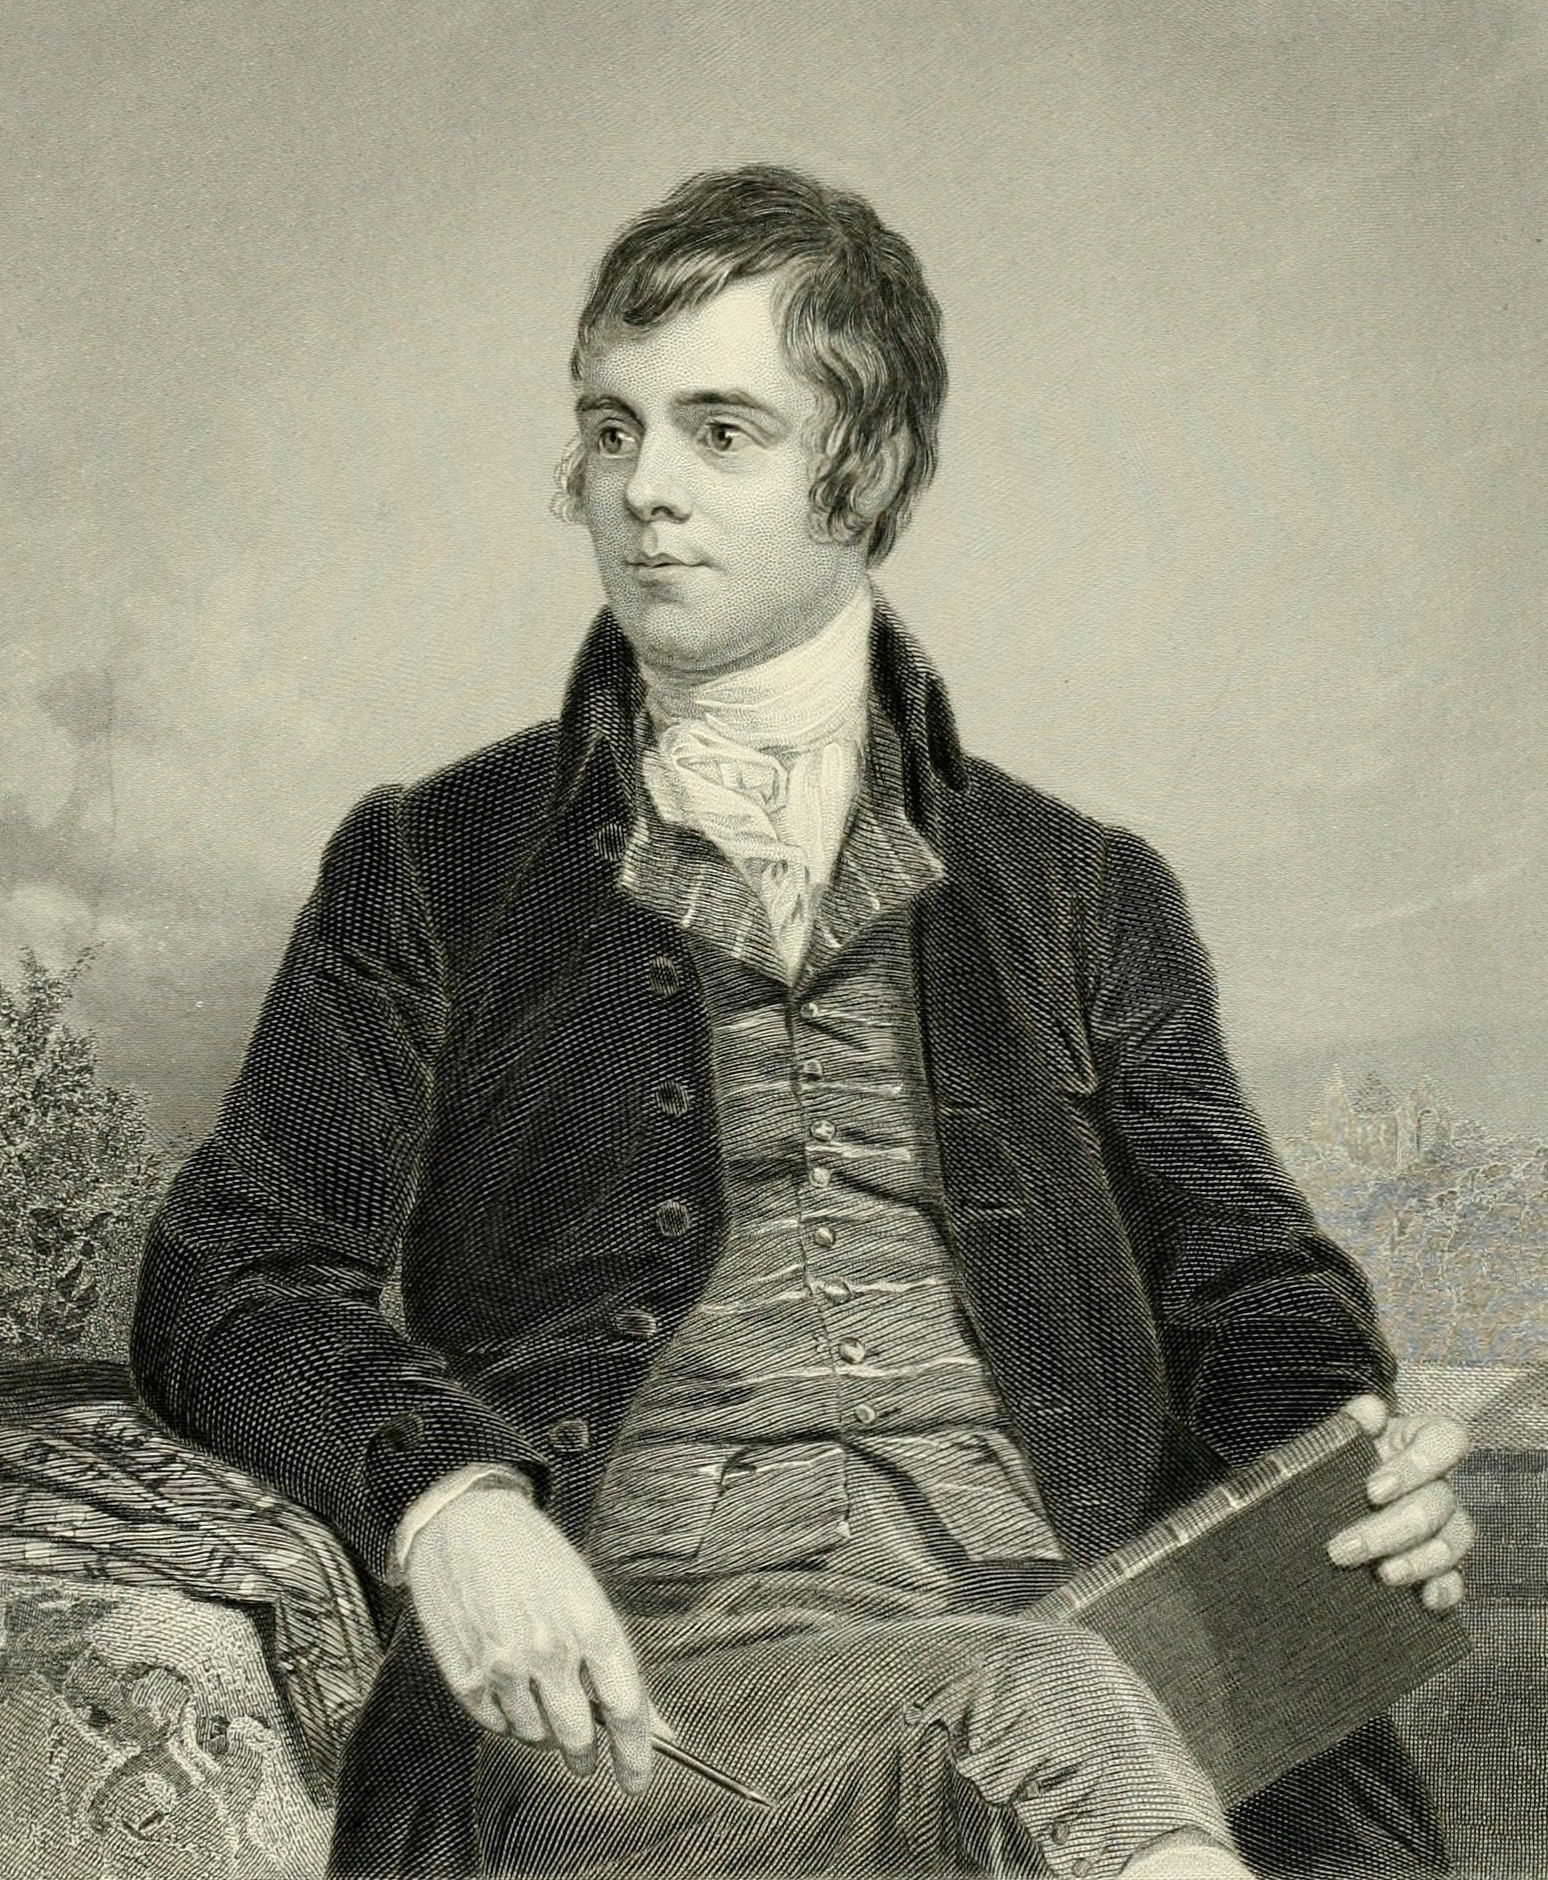 Robert Burns inspired many vernacular writers ...